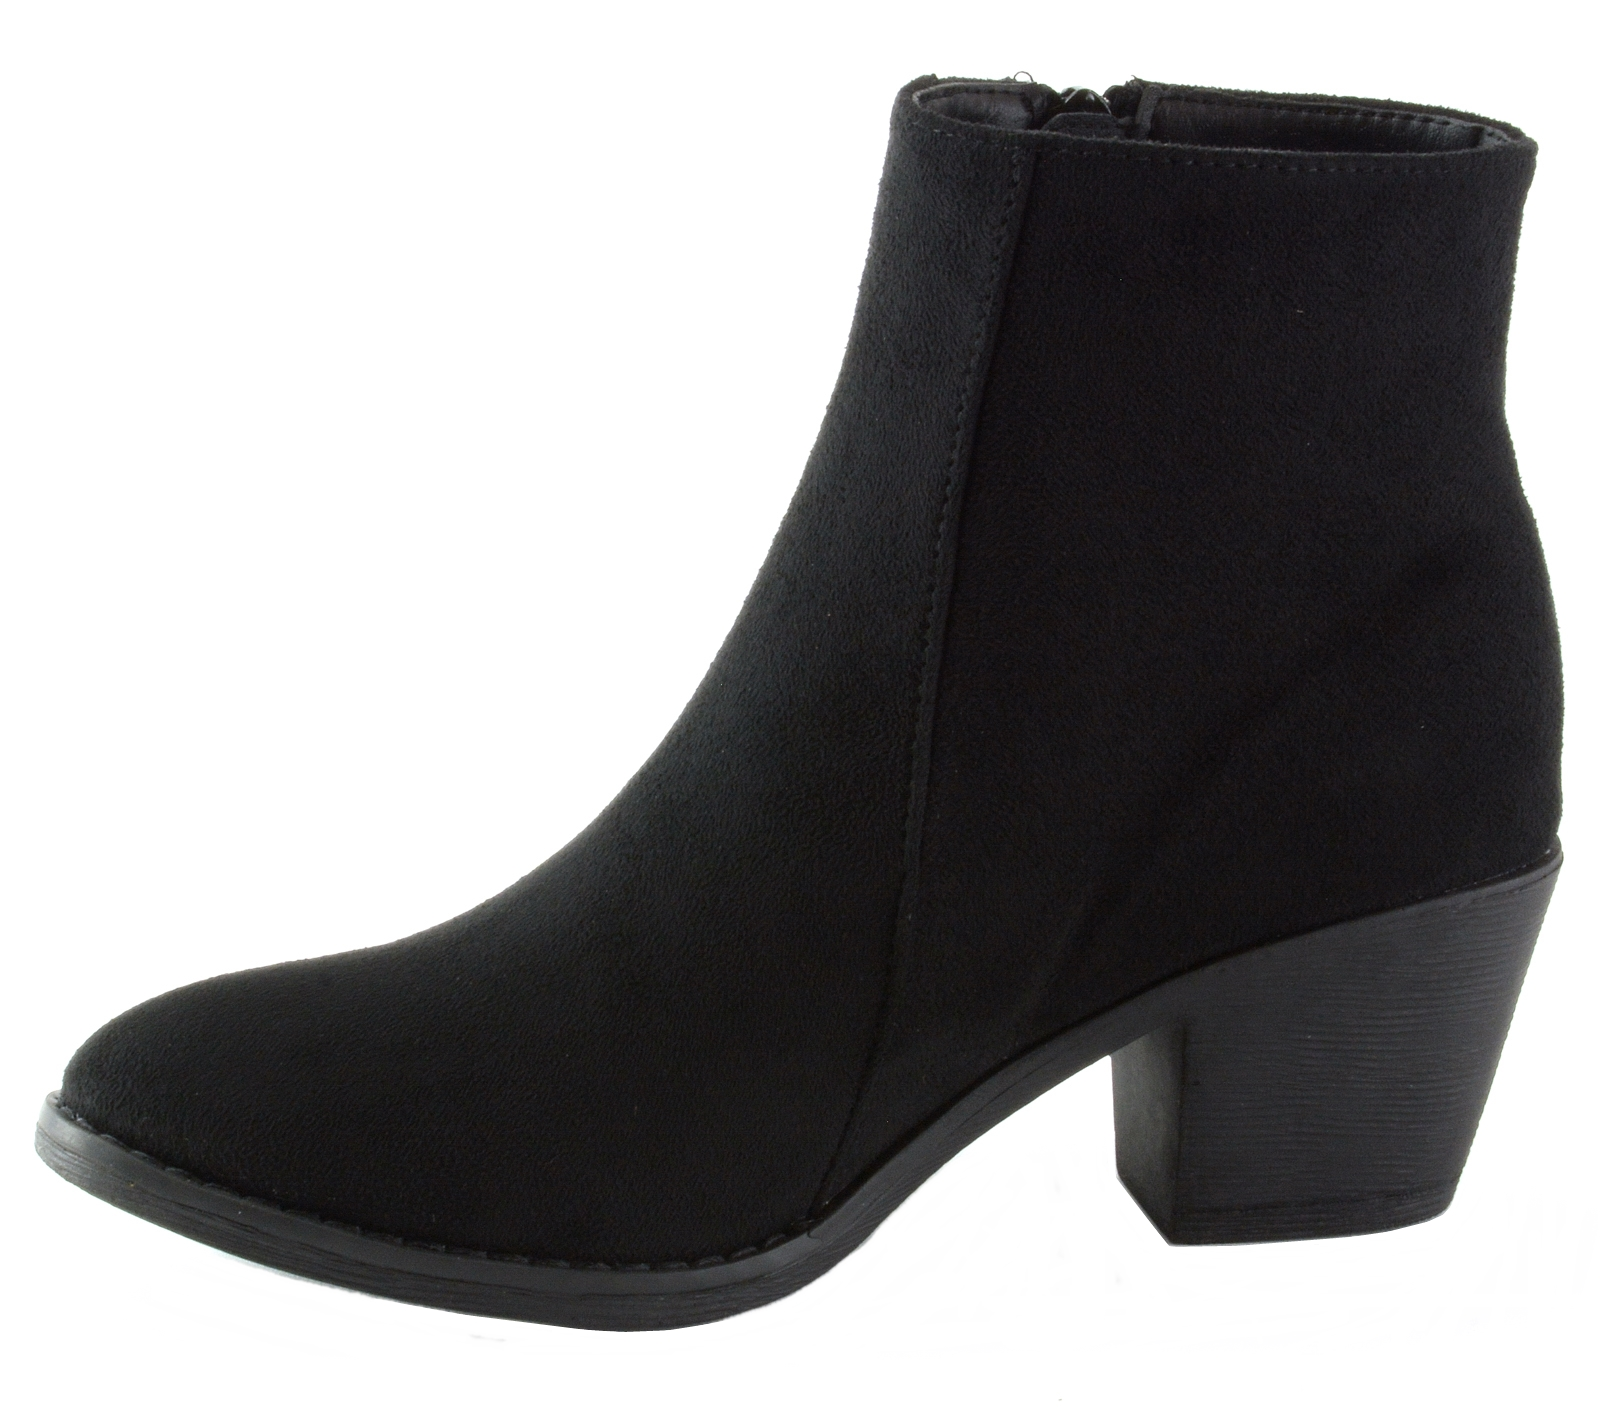 Alpine-Swiss-Arosa-Womens-Ankle-Boots-Fringe-Shoes-Block-High-Heel-Micro-Suede thumbnail 12